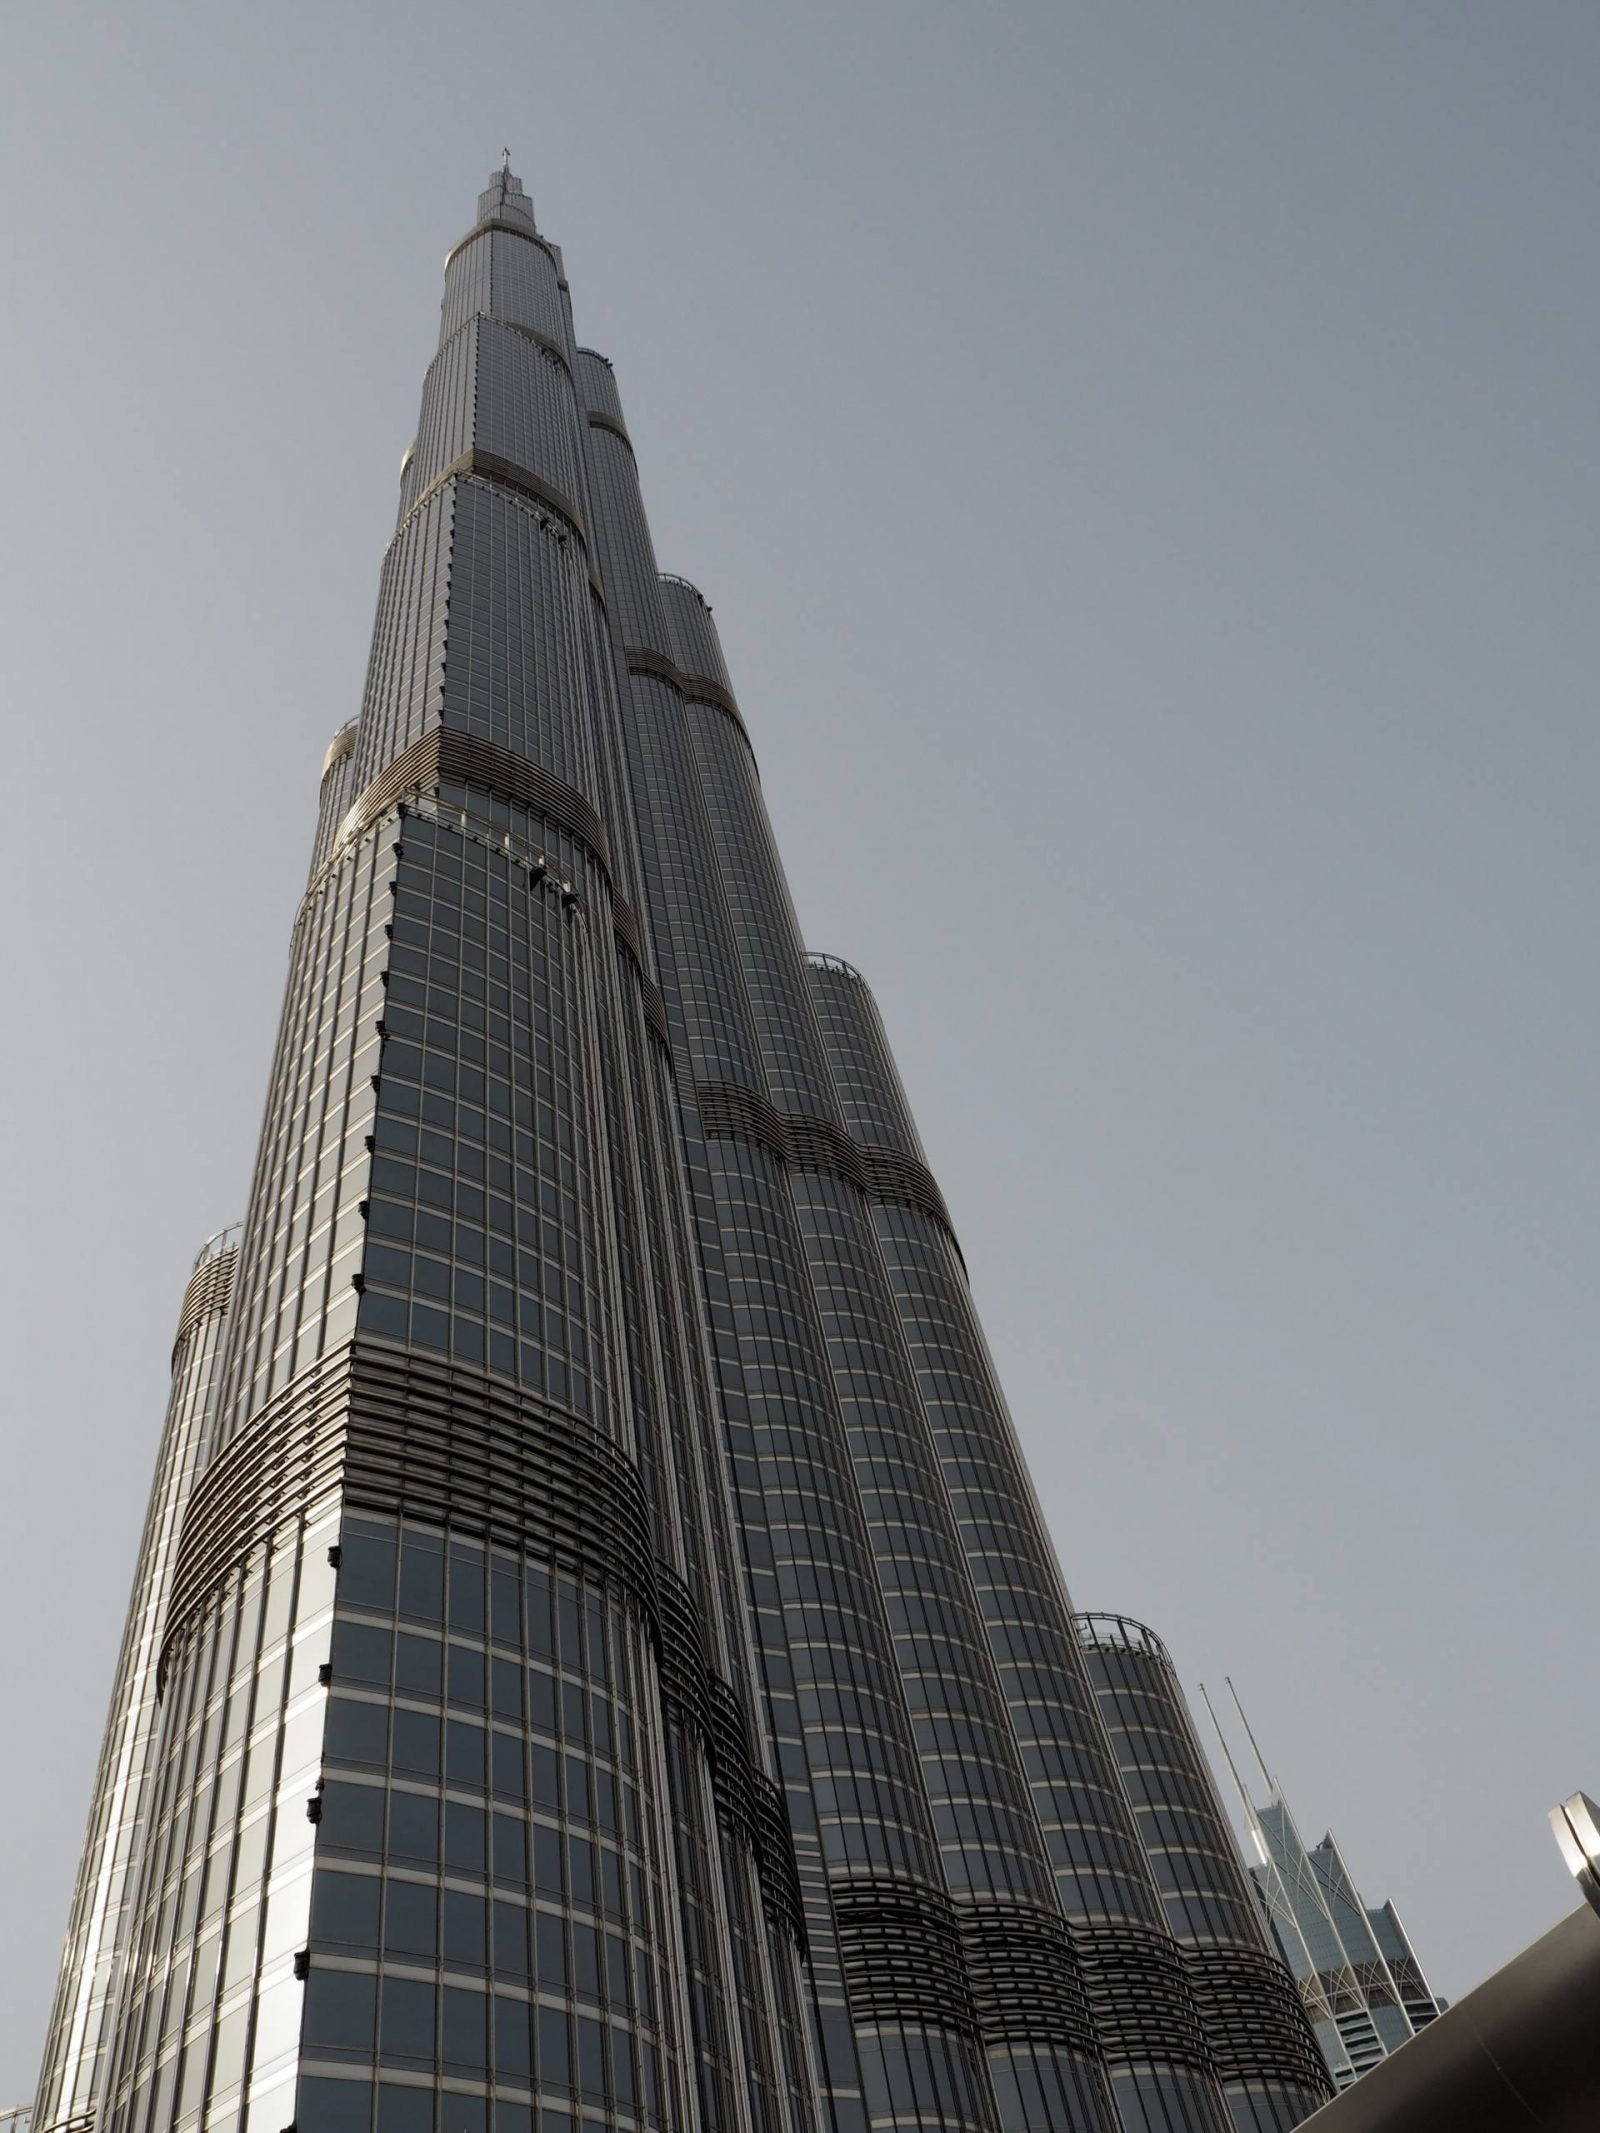 Looking up at the Burj Khalifa tower, Dubai